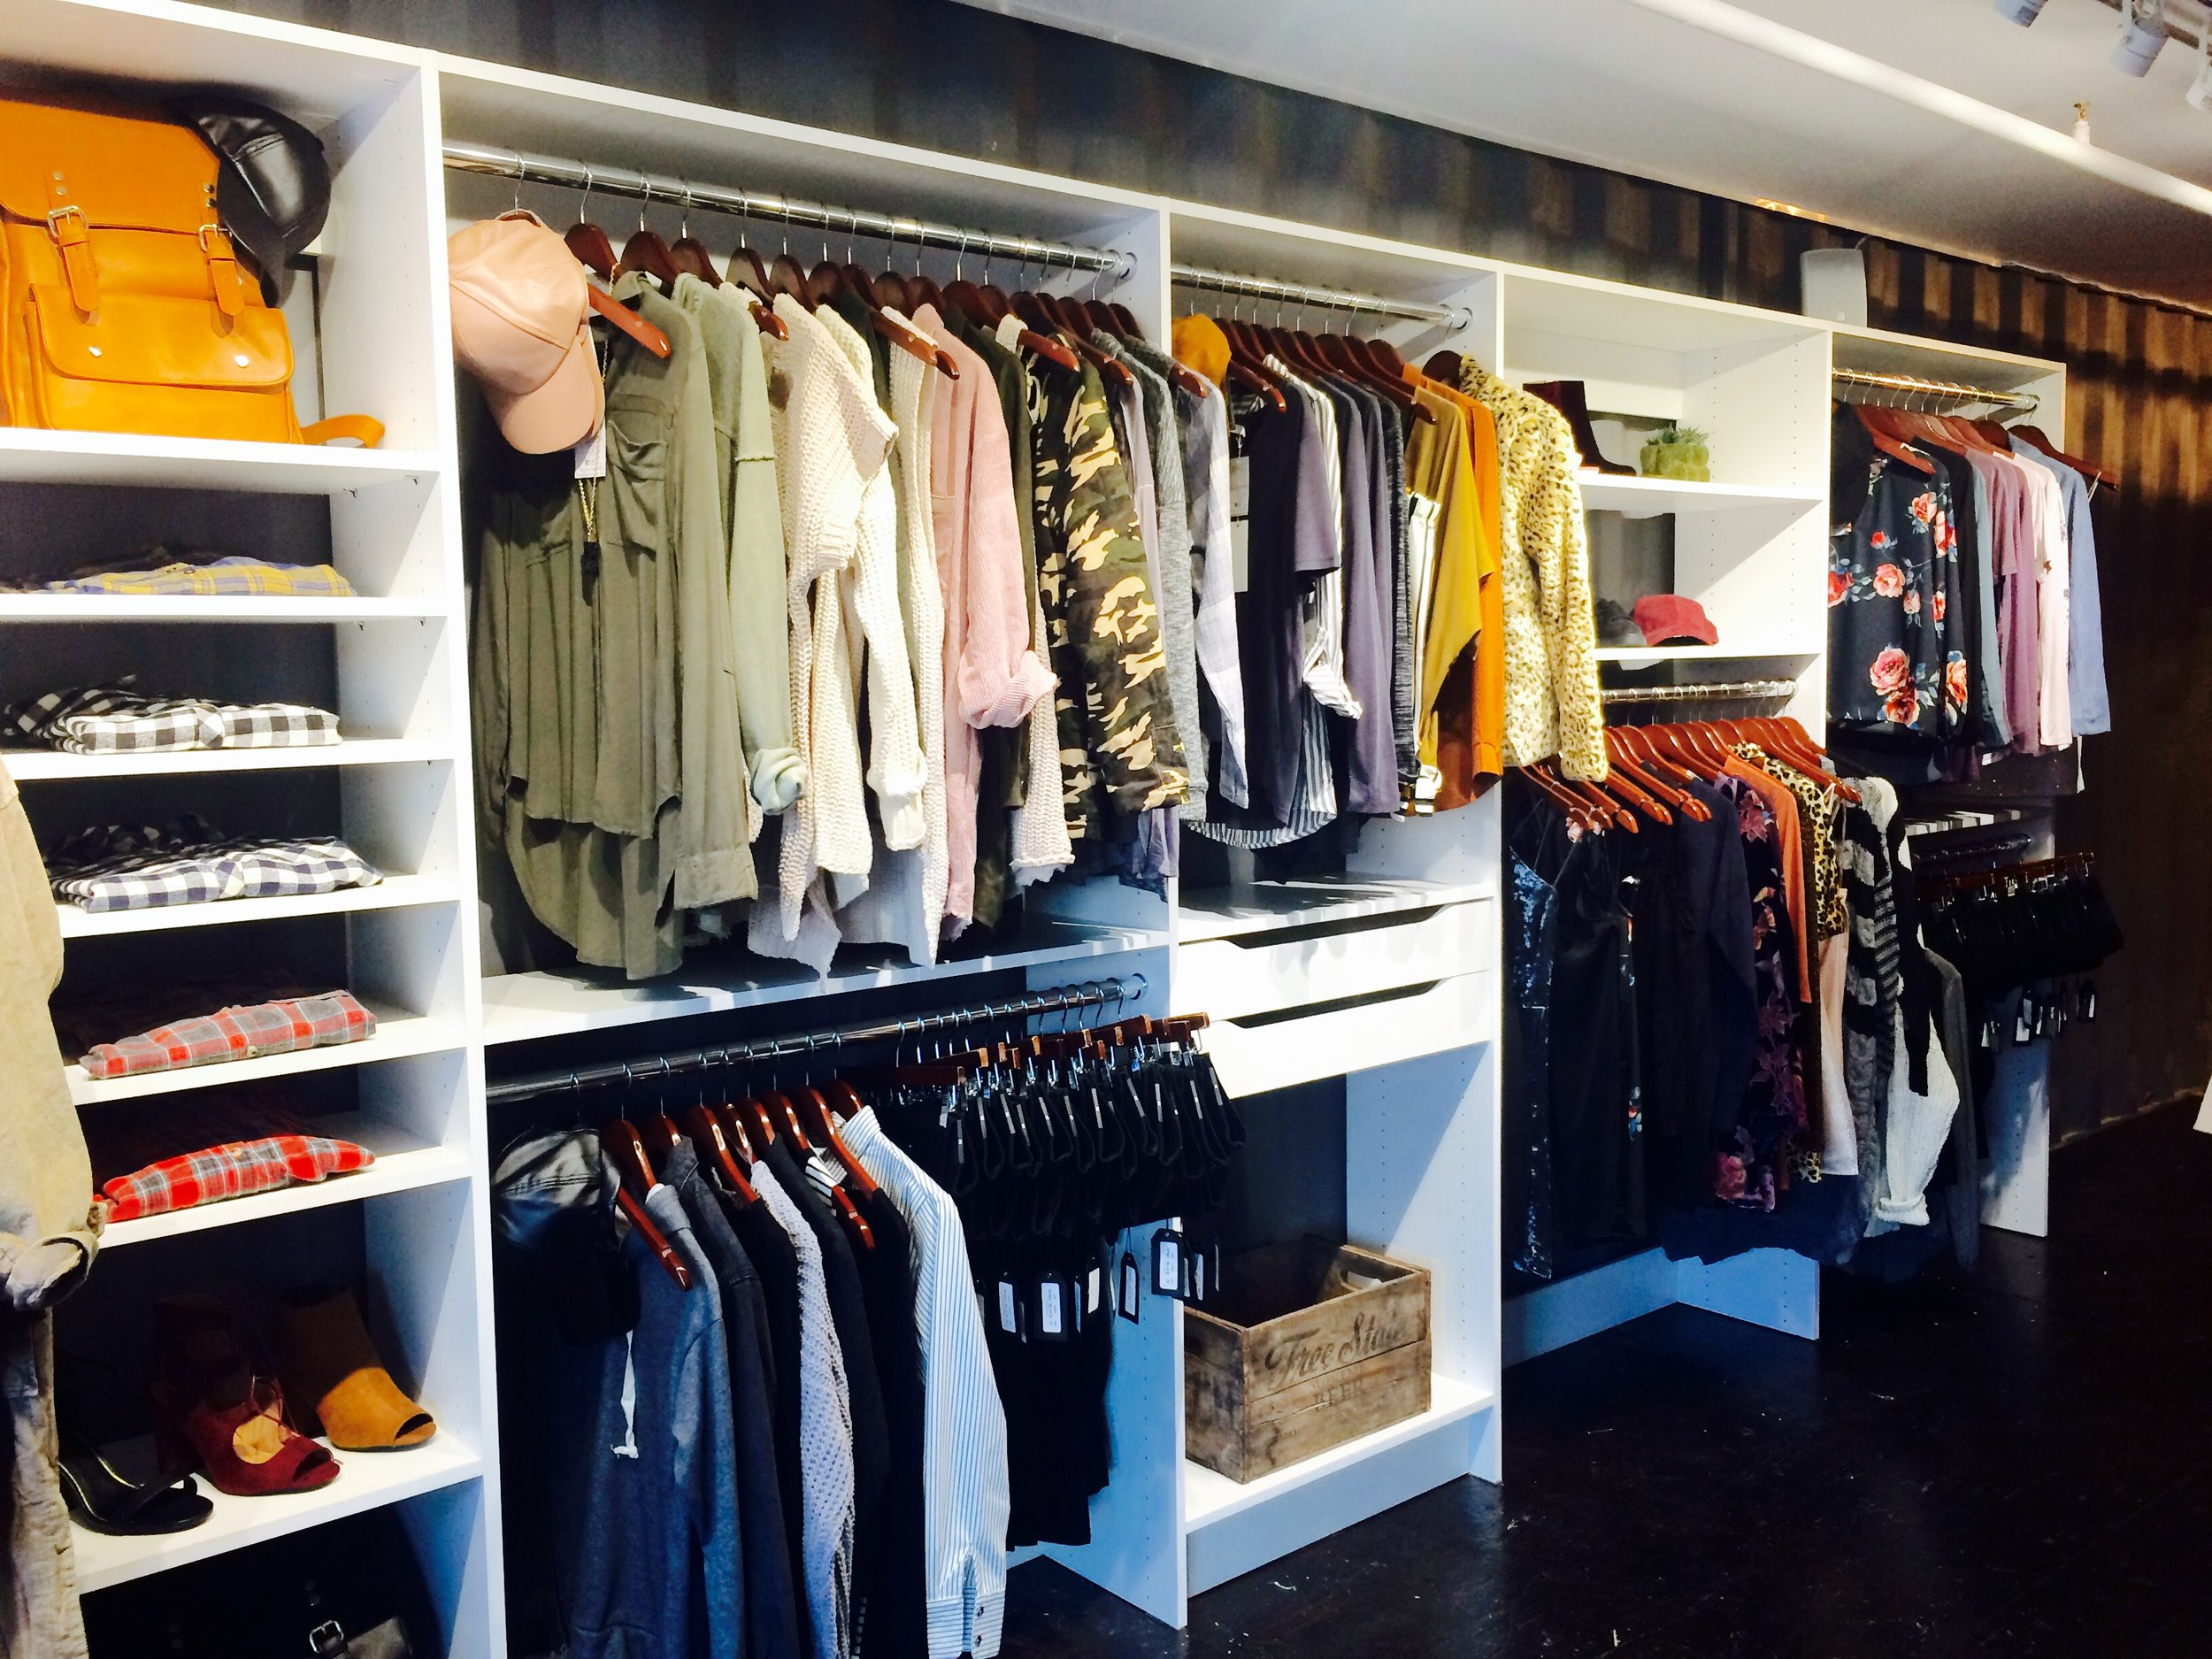 Custom closet shelving for shoes, purses, clothes and accessories makes this boutique feel like a high-end closet. Located at  Beau&Arrow in The Boxyard Tulsa , this closet system is built into side-by-side shipping containers.  Call Closets of Tulsa today to see what's possible in your space:  918.609.0214